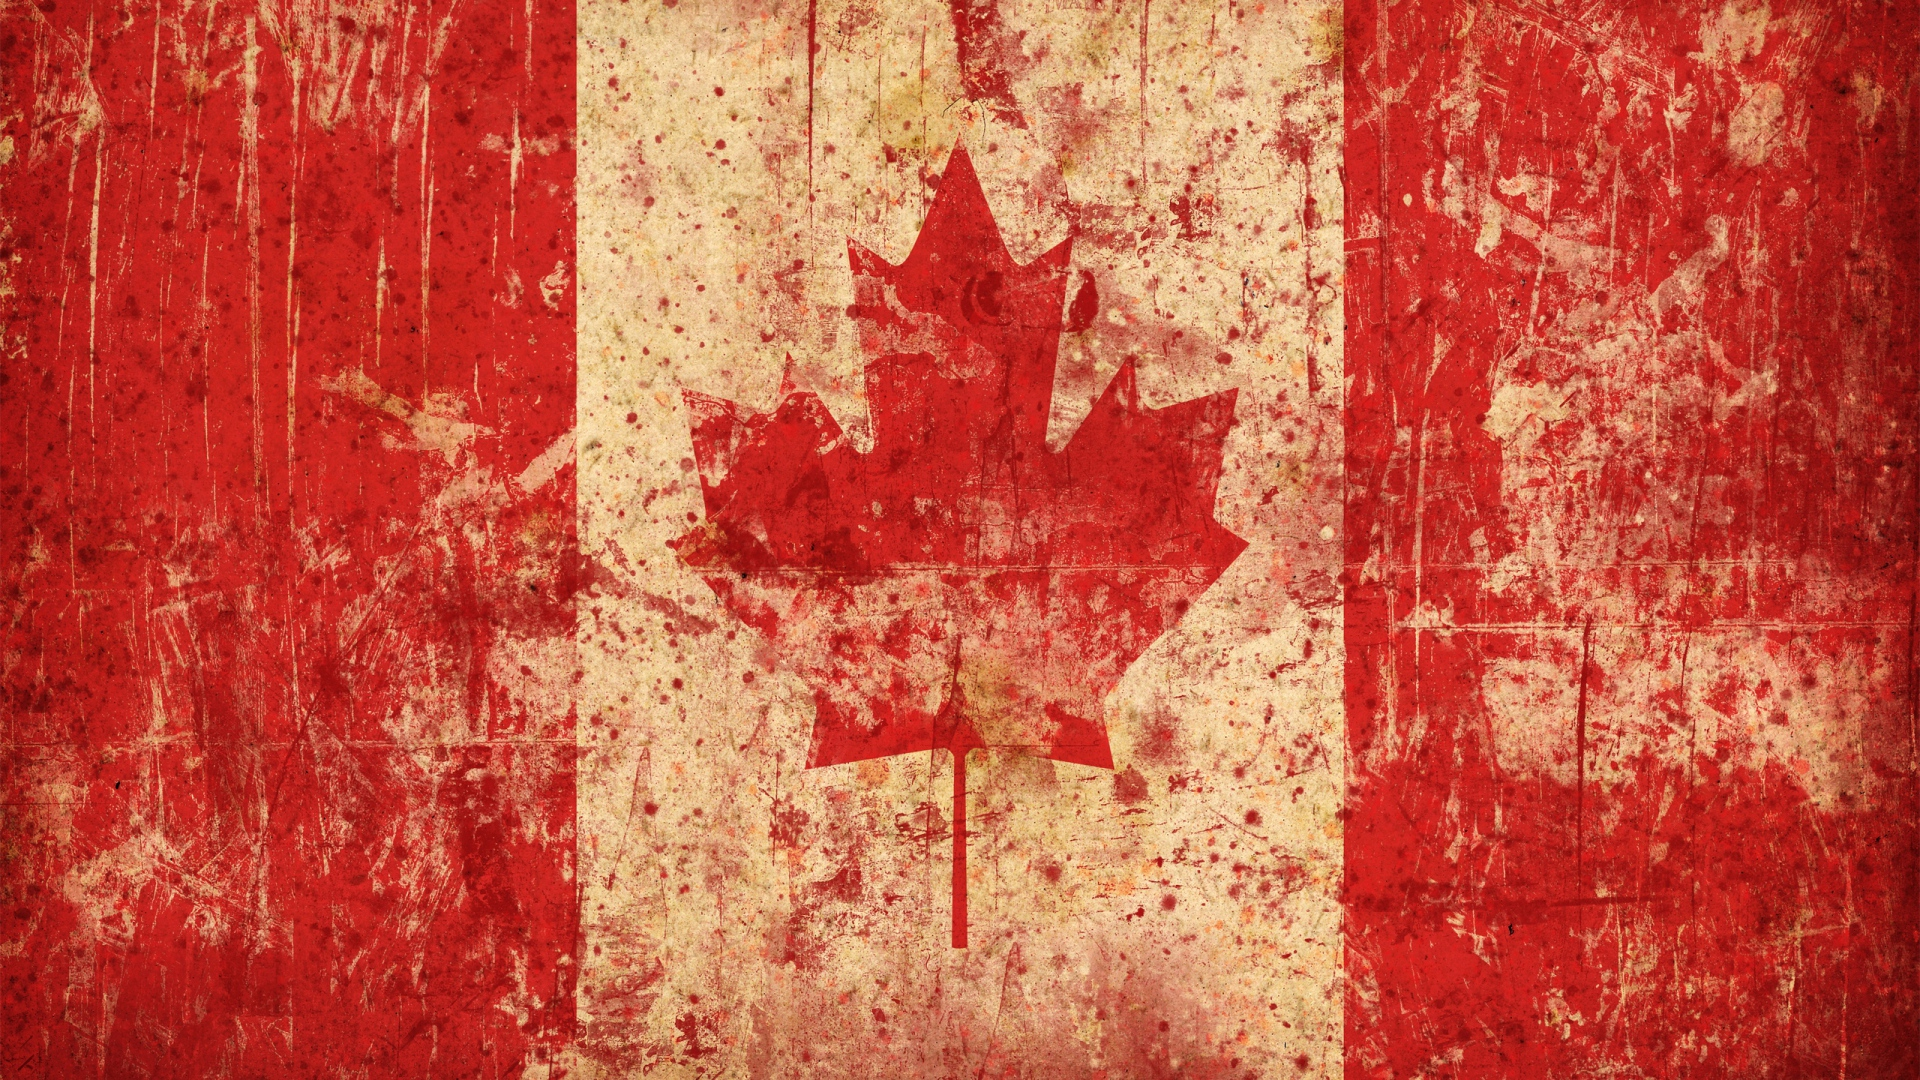 Canada Vintage Wallpaper   MixHD wallpapers 1920x1080